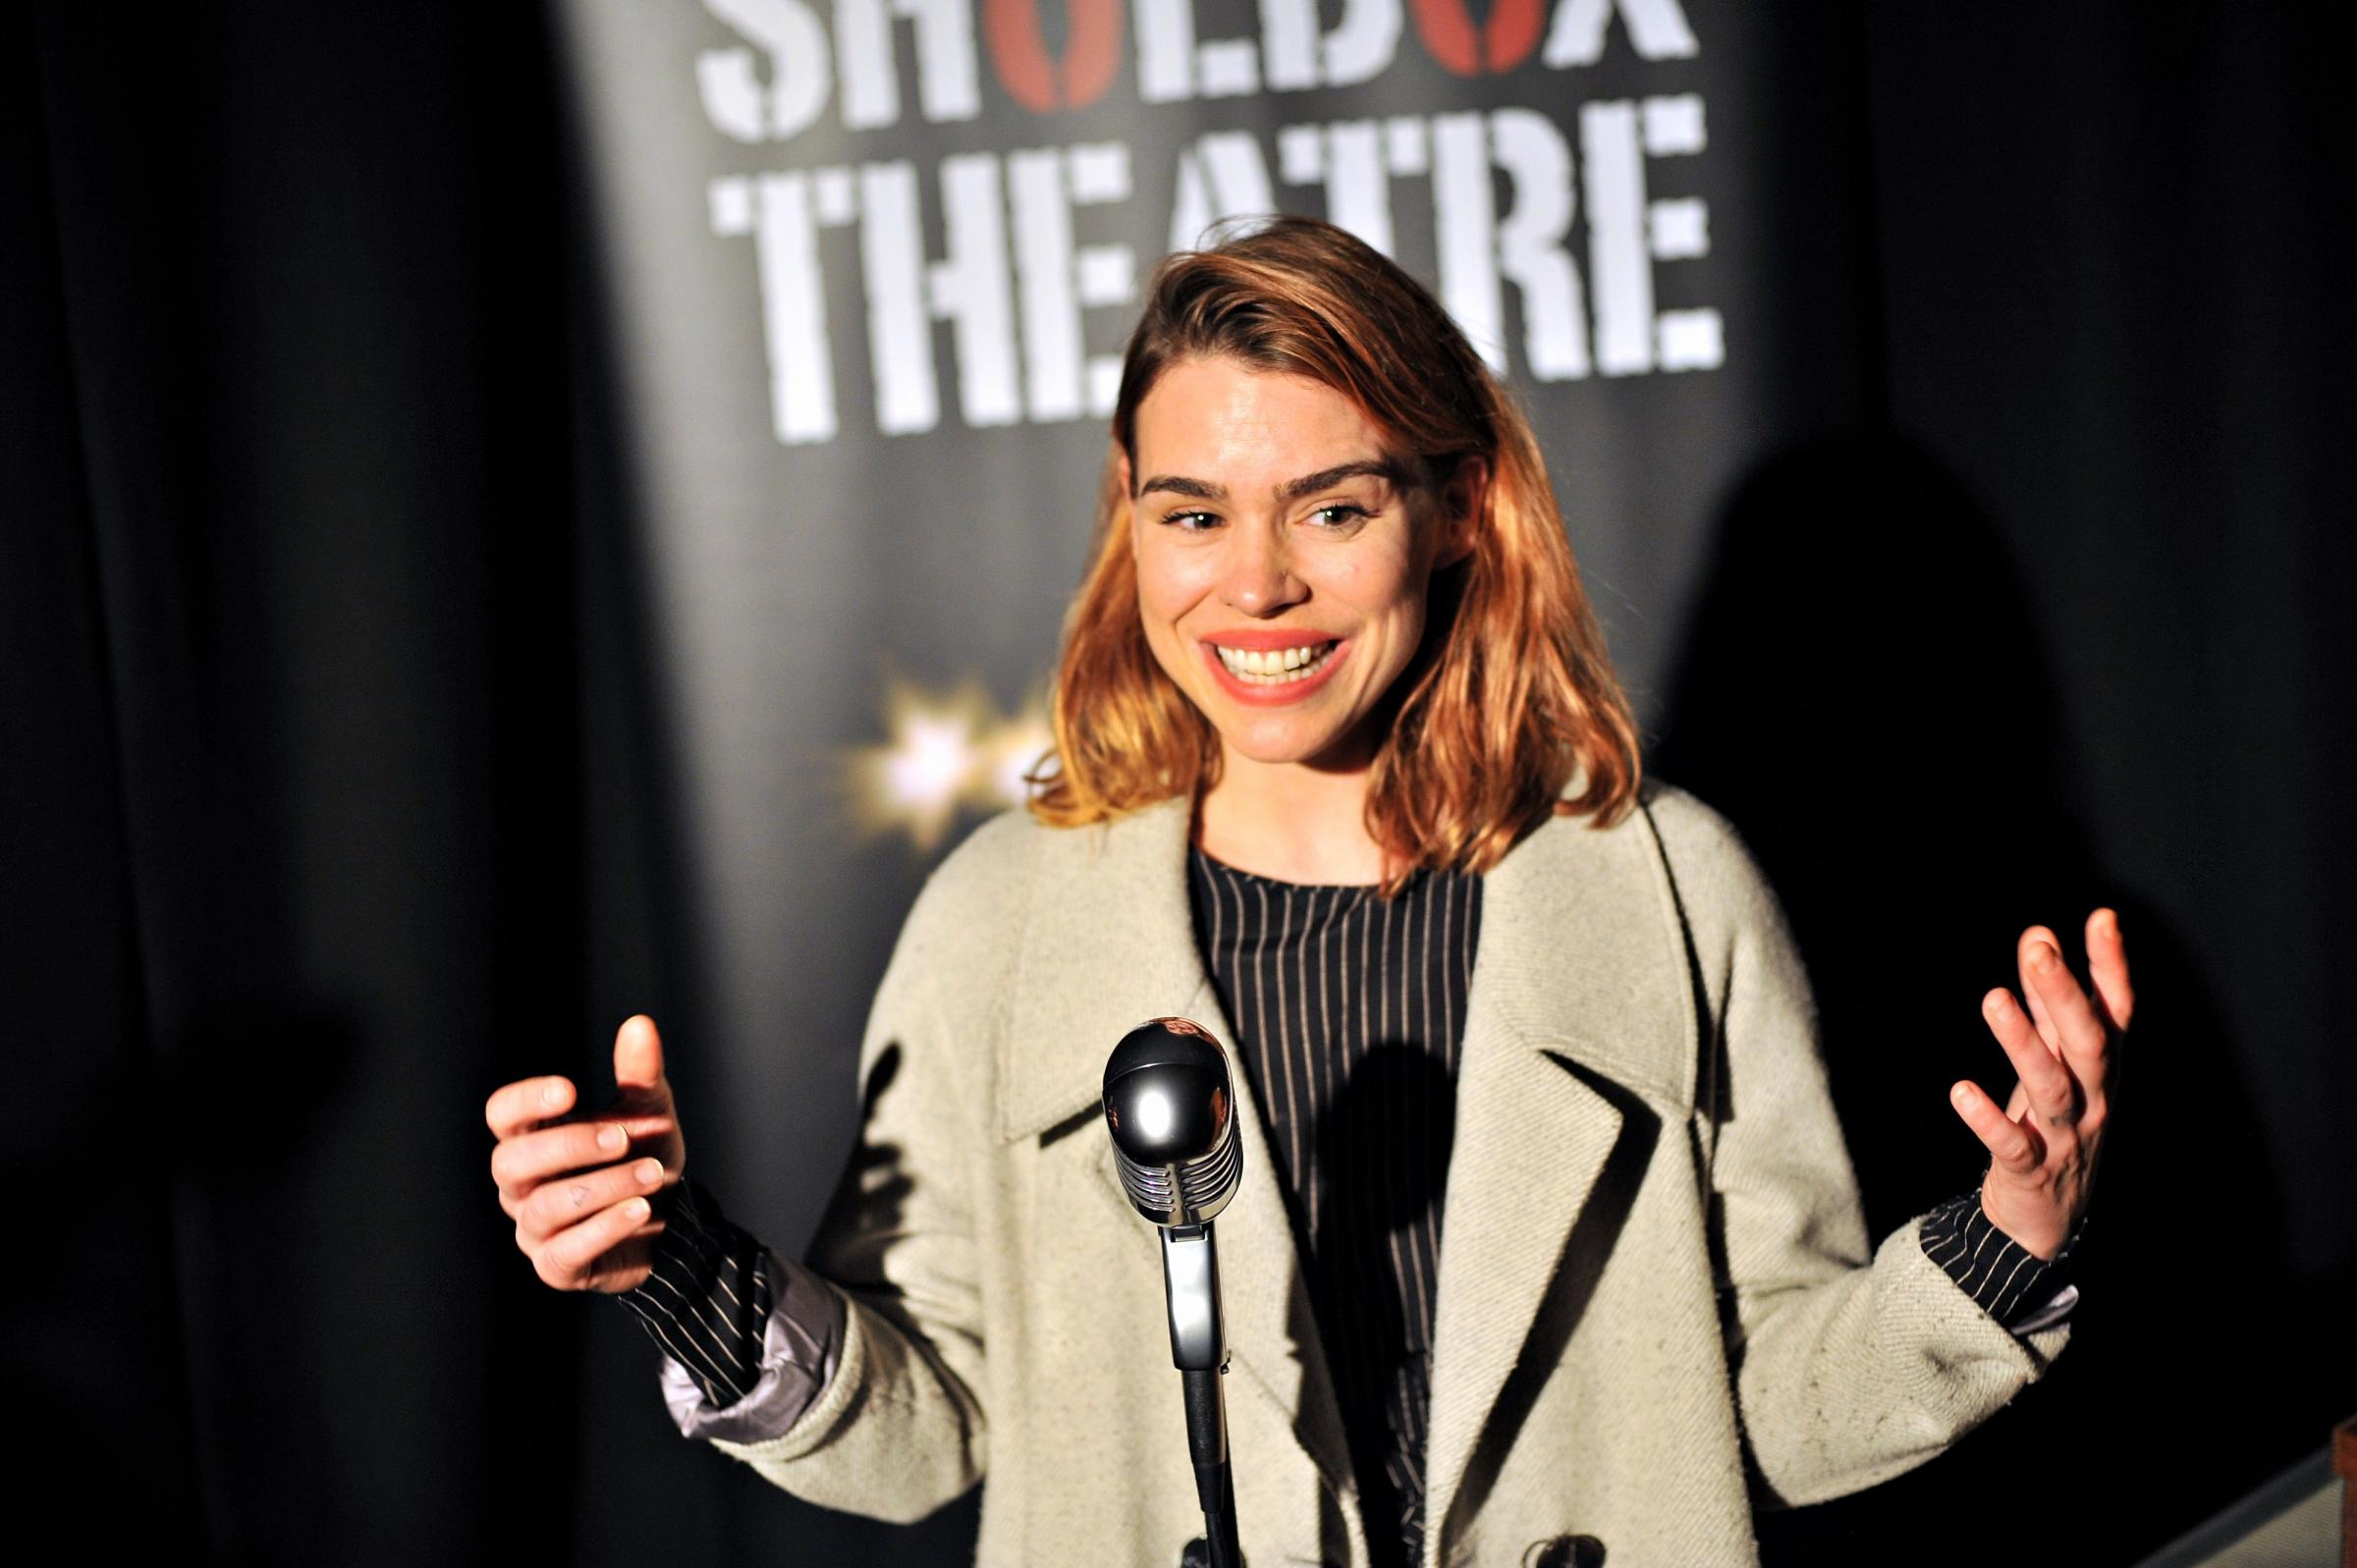 Billie Piper talked about the importance of supporting theatre in Swindon.